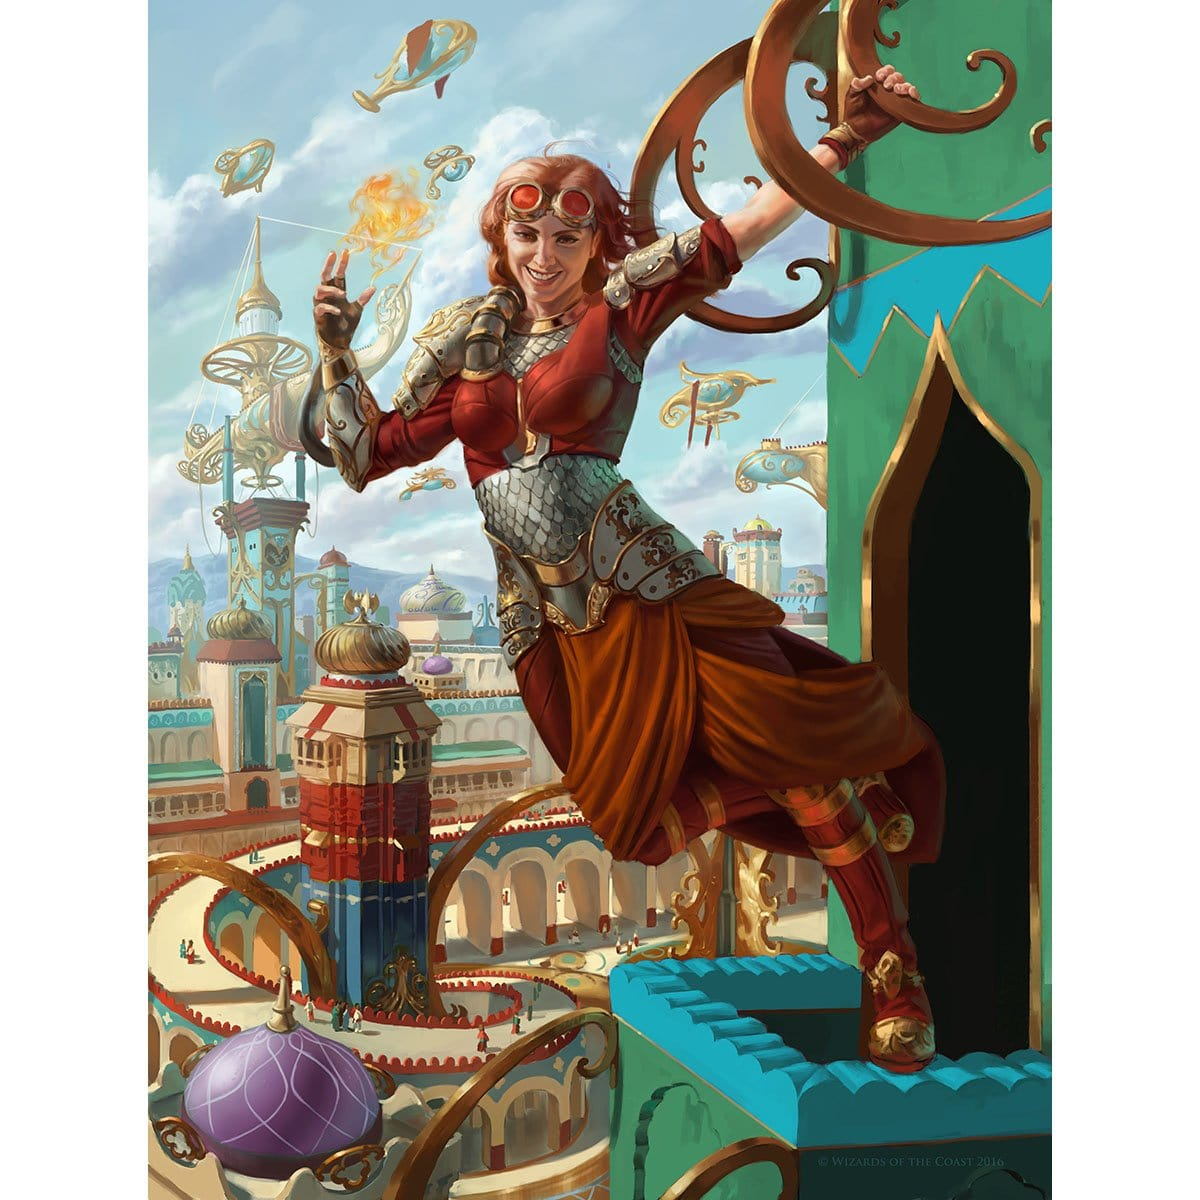 Chandra, Pyrogenius Print - Print - Original Magic Art - Accessories for Magic the Gathering and other card games